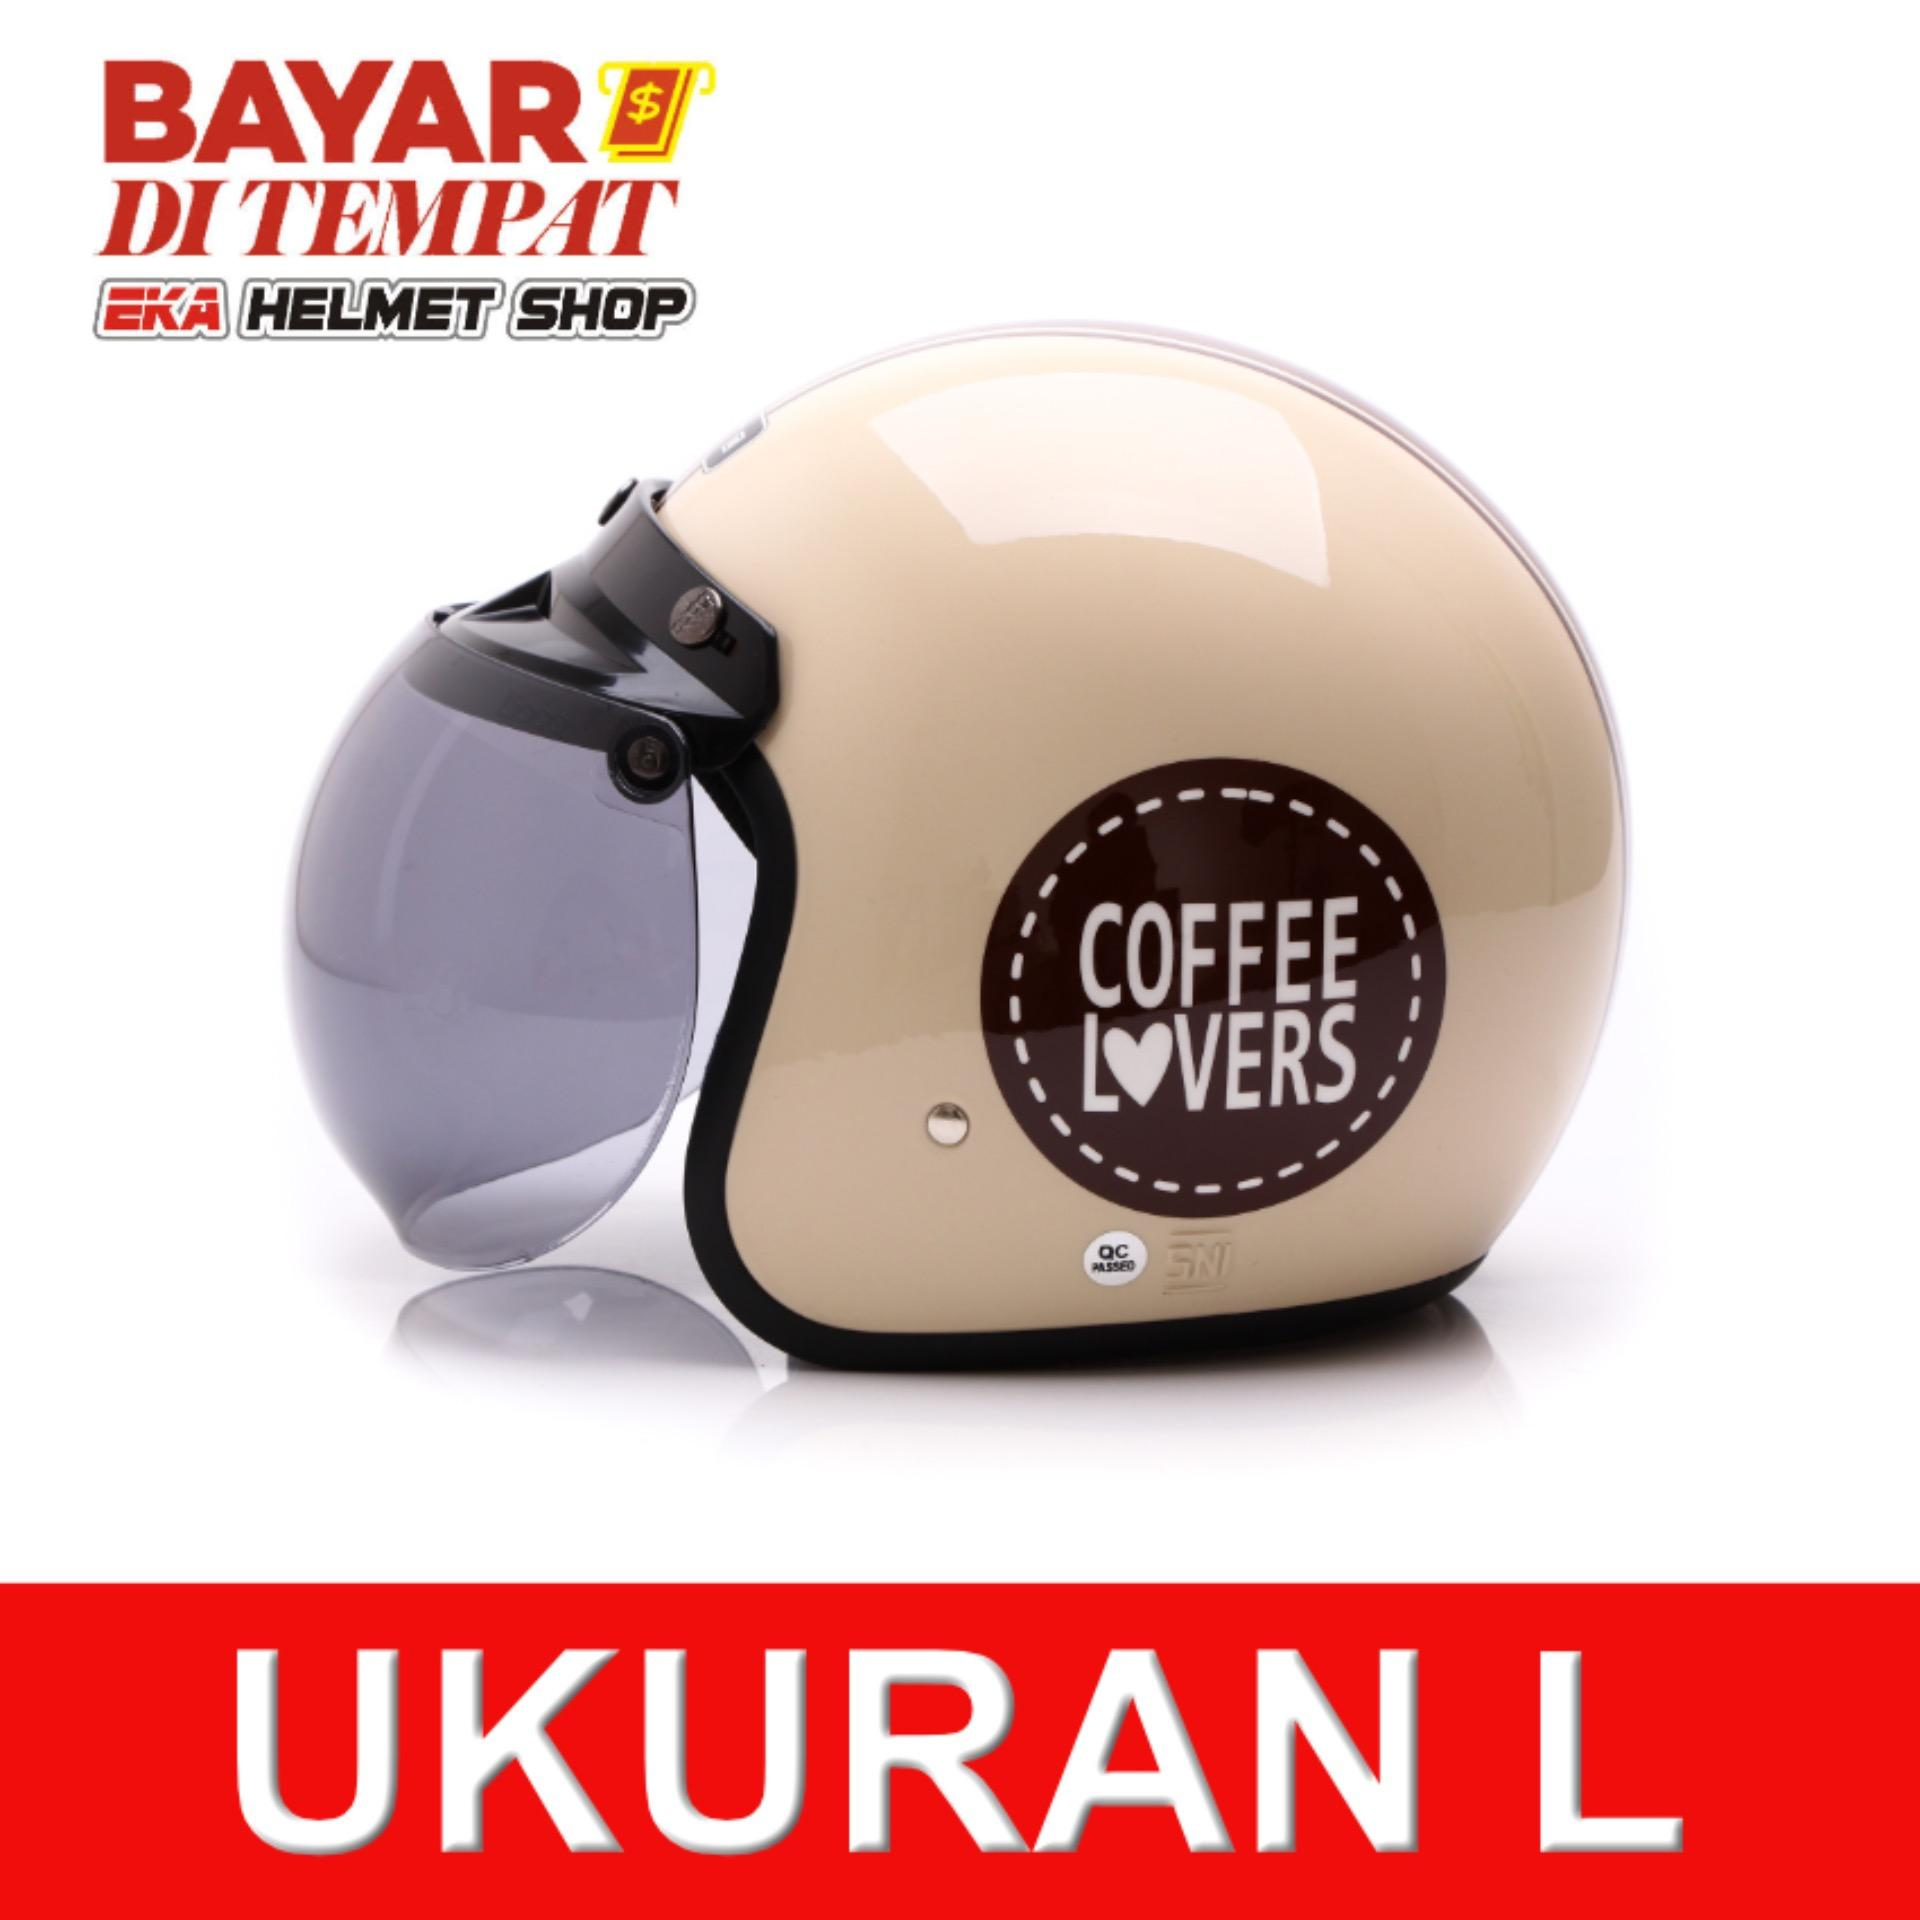 Jual Wto Helmet Retro Bogo Coffee Lovers Krem Wto Helmet Original